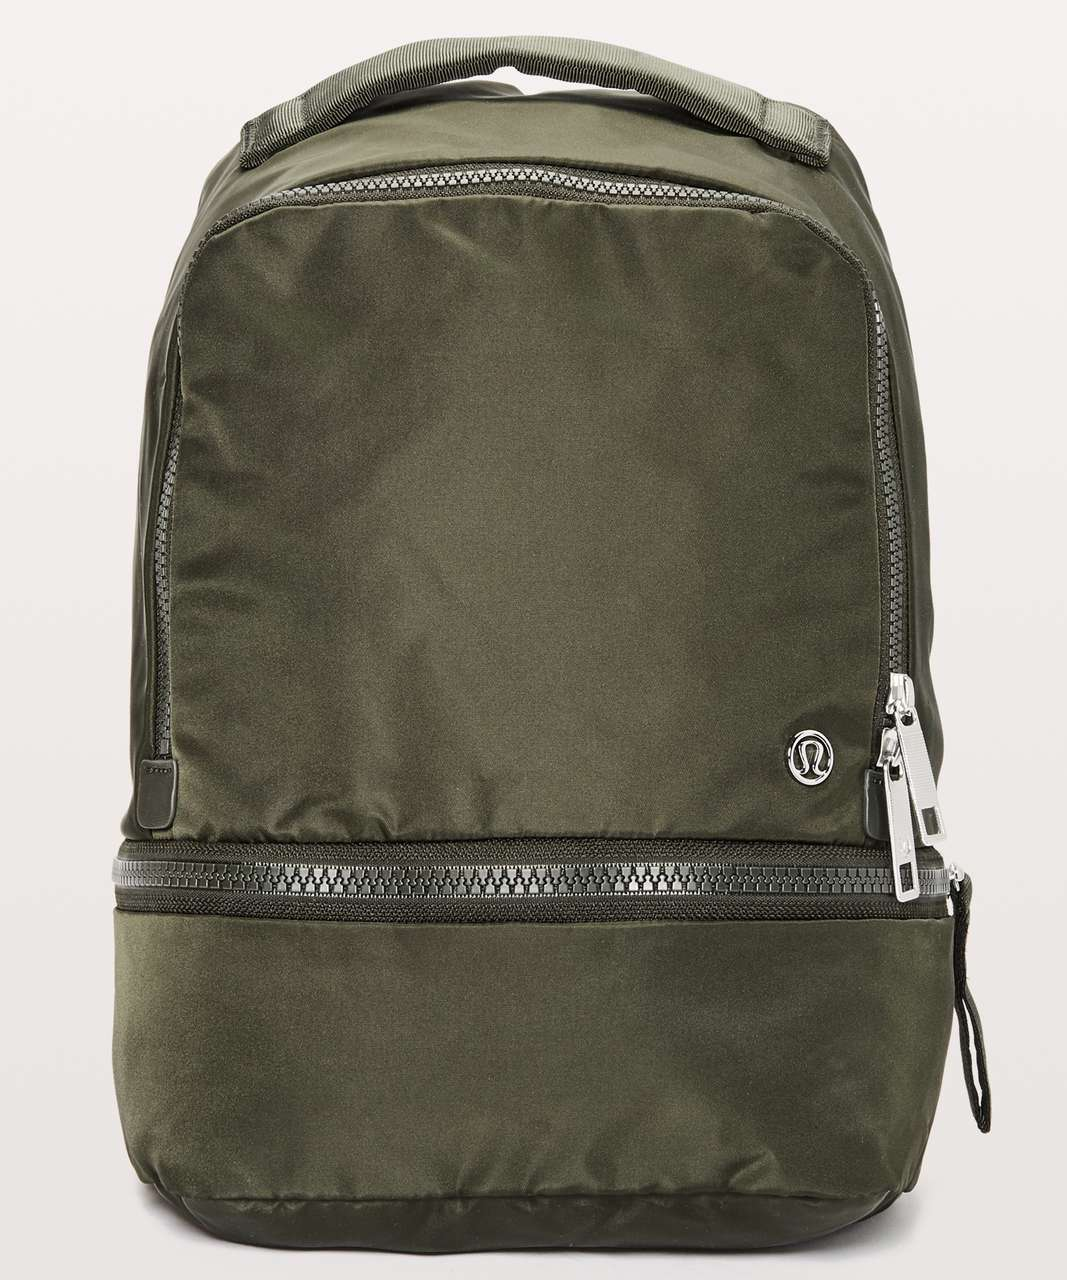 Lululemon City Adventurer Backpack *Mini 12L - Dark Olive